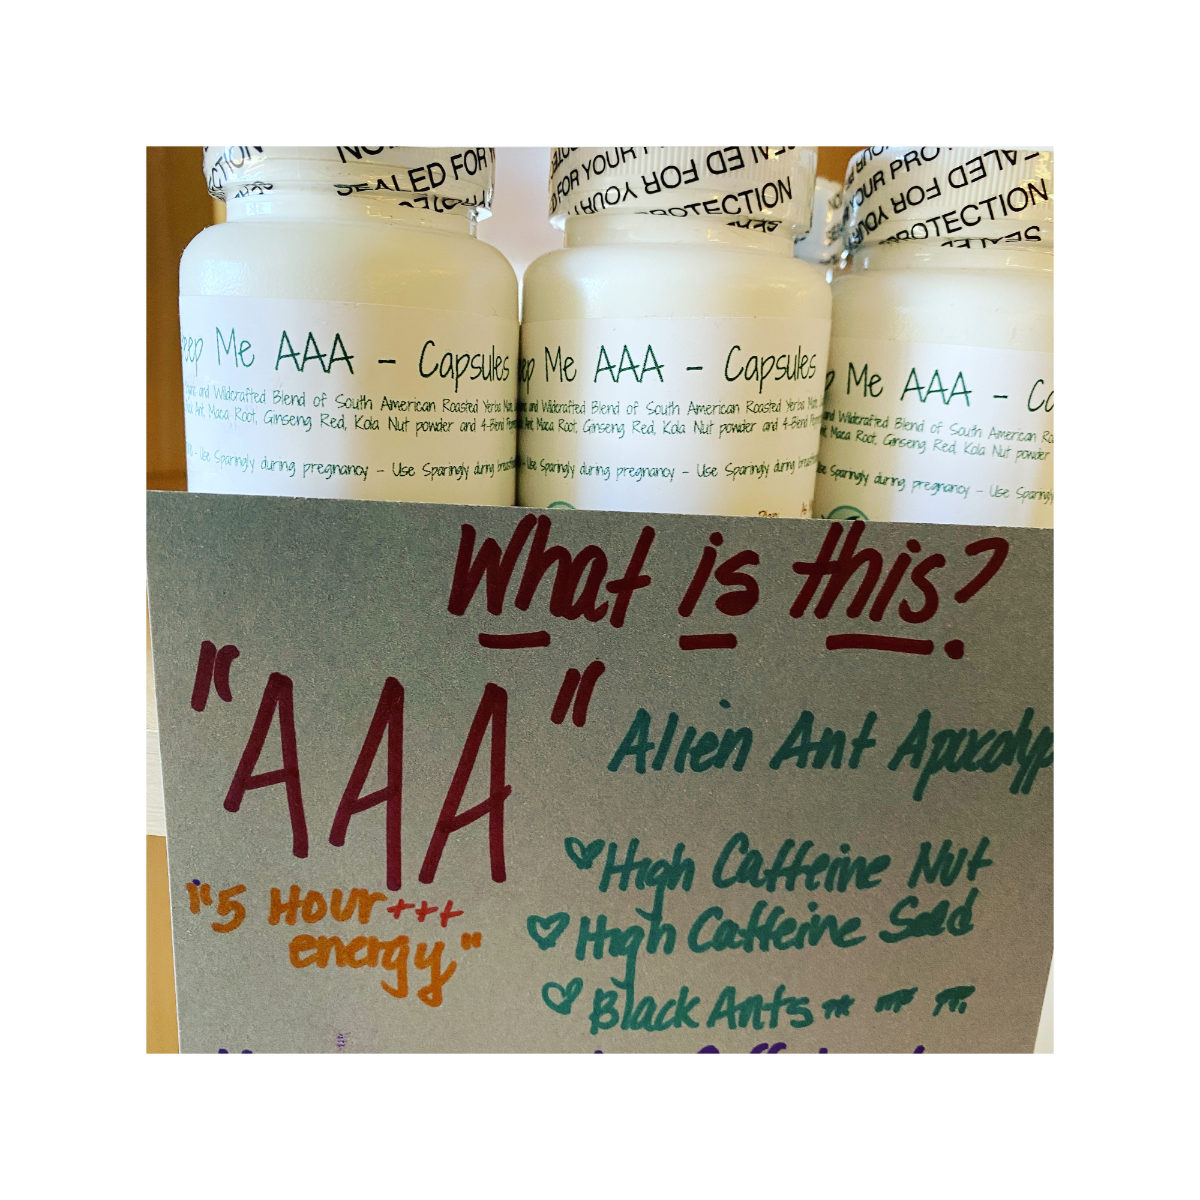 Alien Ant Apocalypse (AAA) Capsules blend is a high caffeine blend that gives energy and mental clarity and can be felt immediately.